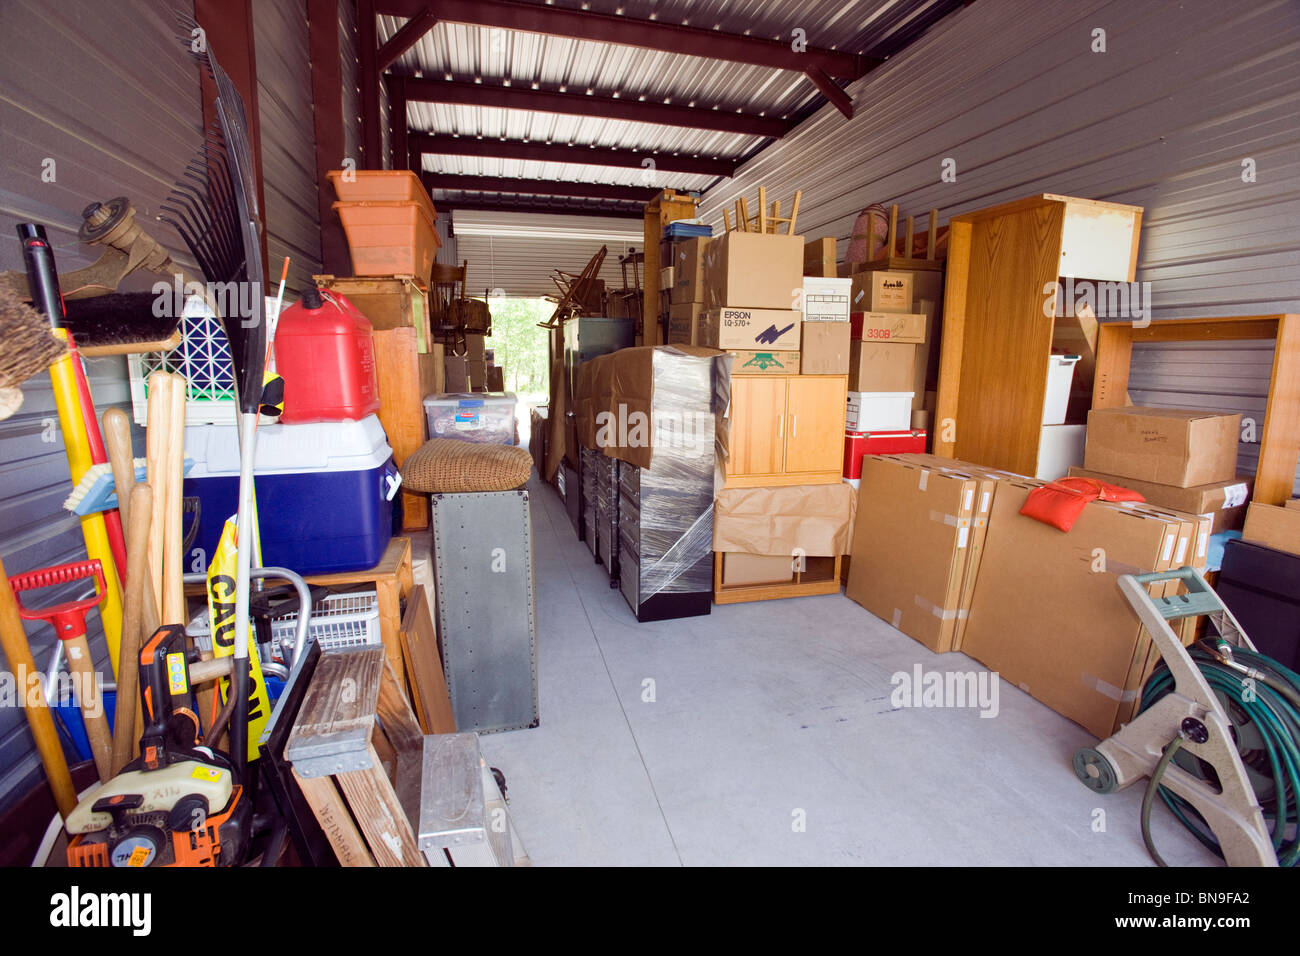 Family personal house hold belongings temporarily stored in a mini storage facility. - Stock Image